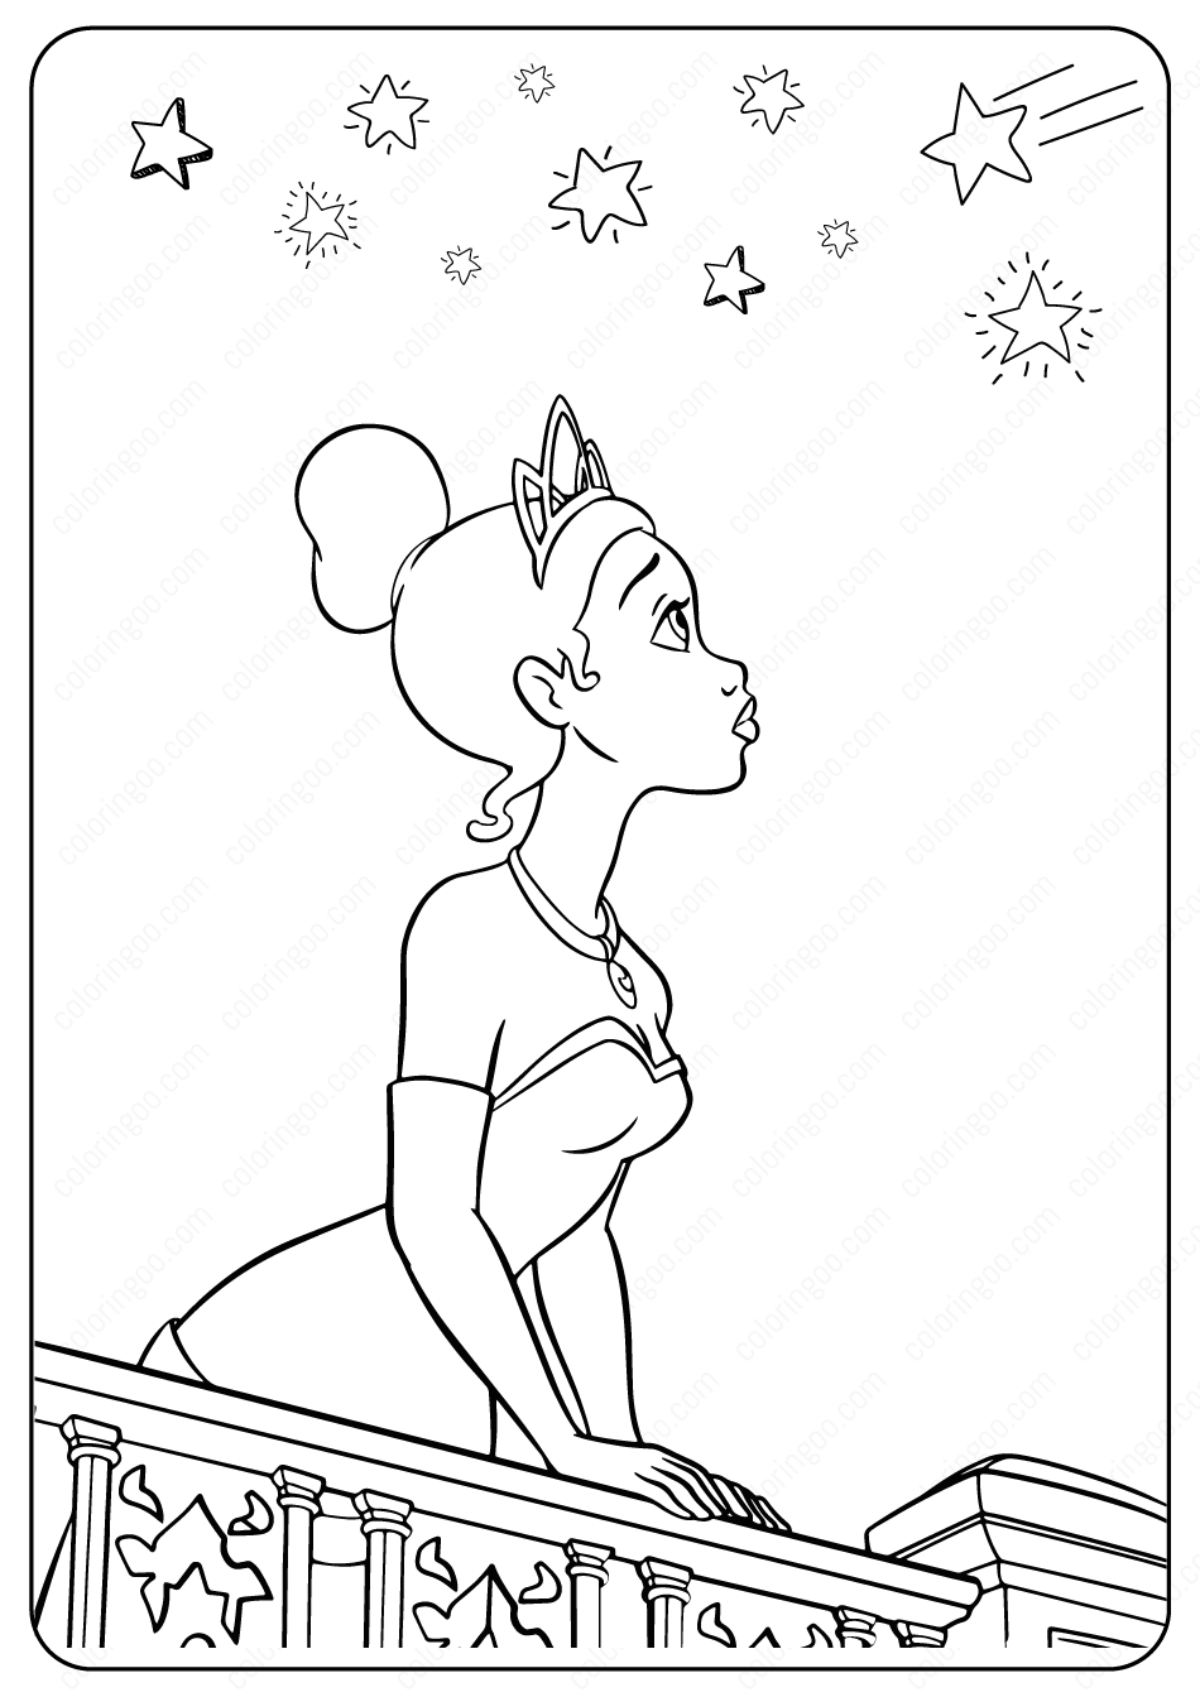 Printable Disney Tiana Under The Stars Coloring Pages